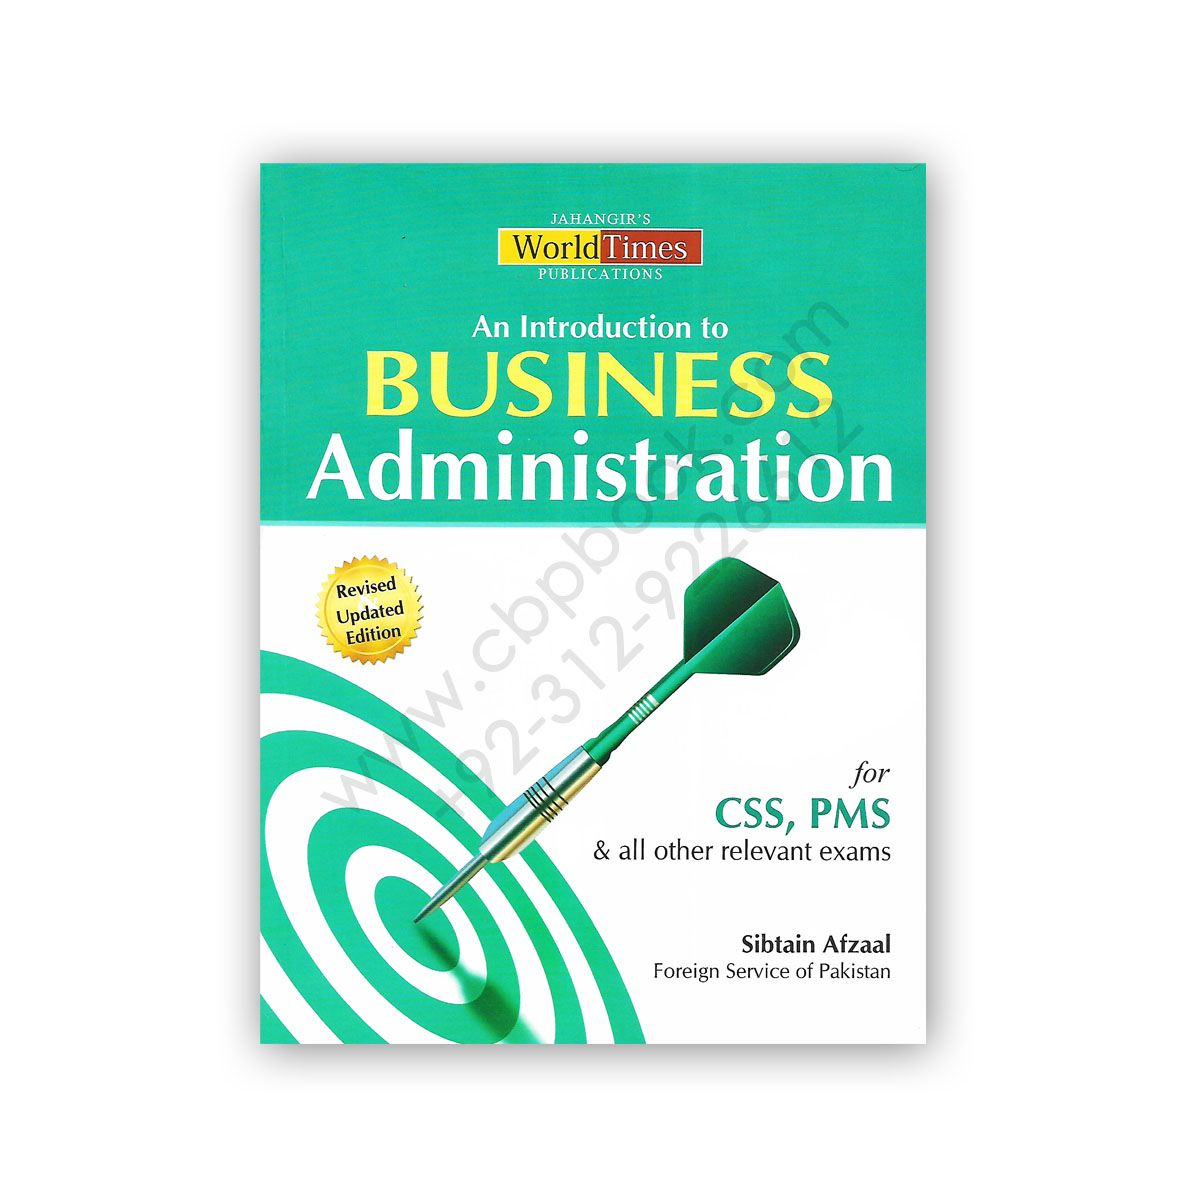 Business Administration For CSS PMS By Sibtain Afzaal Jahangir